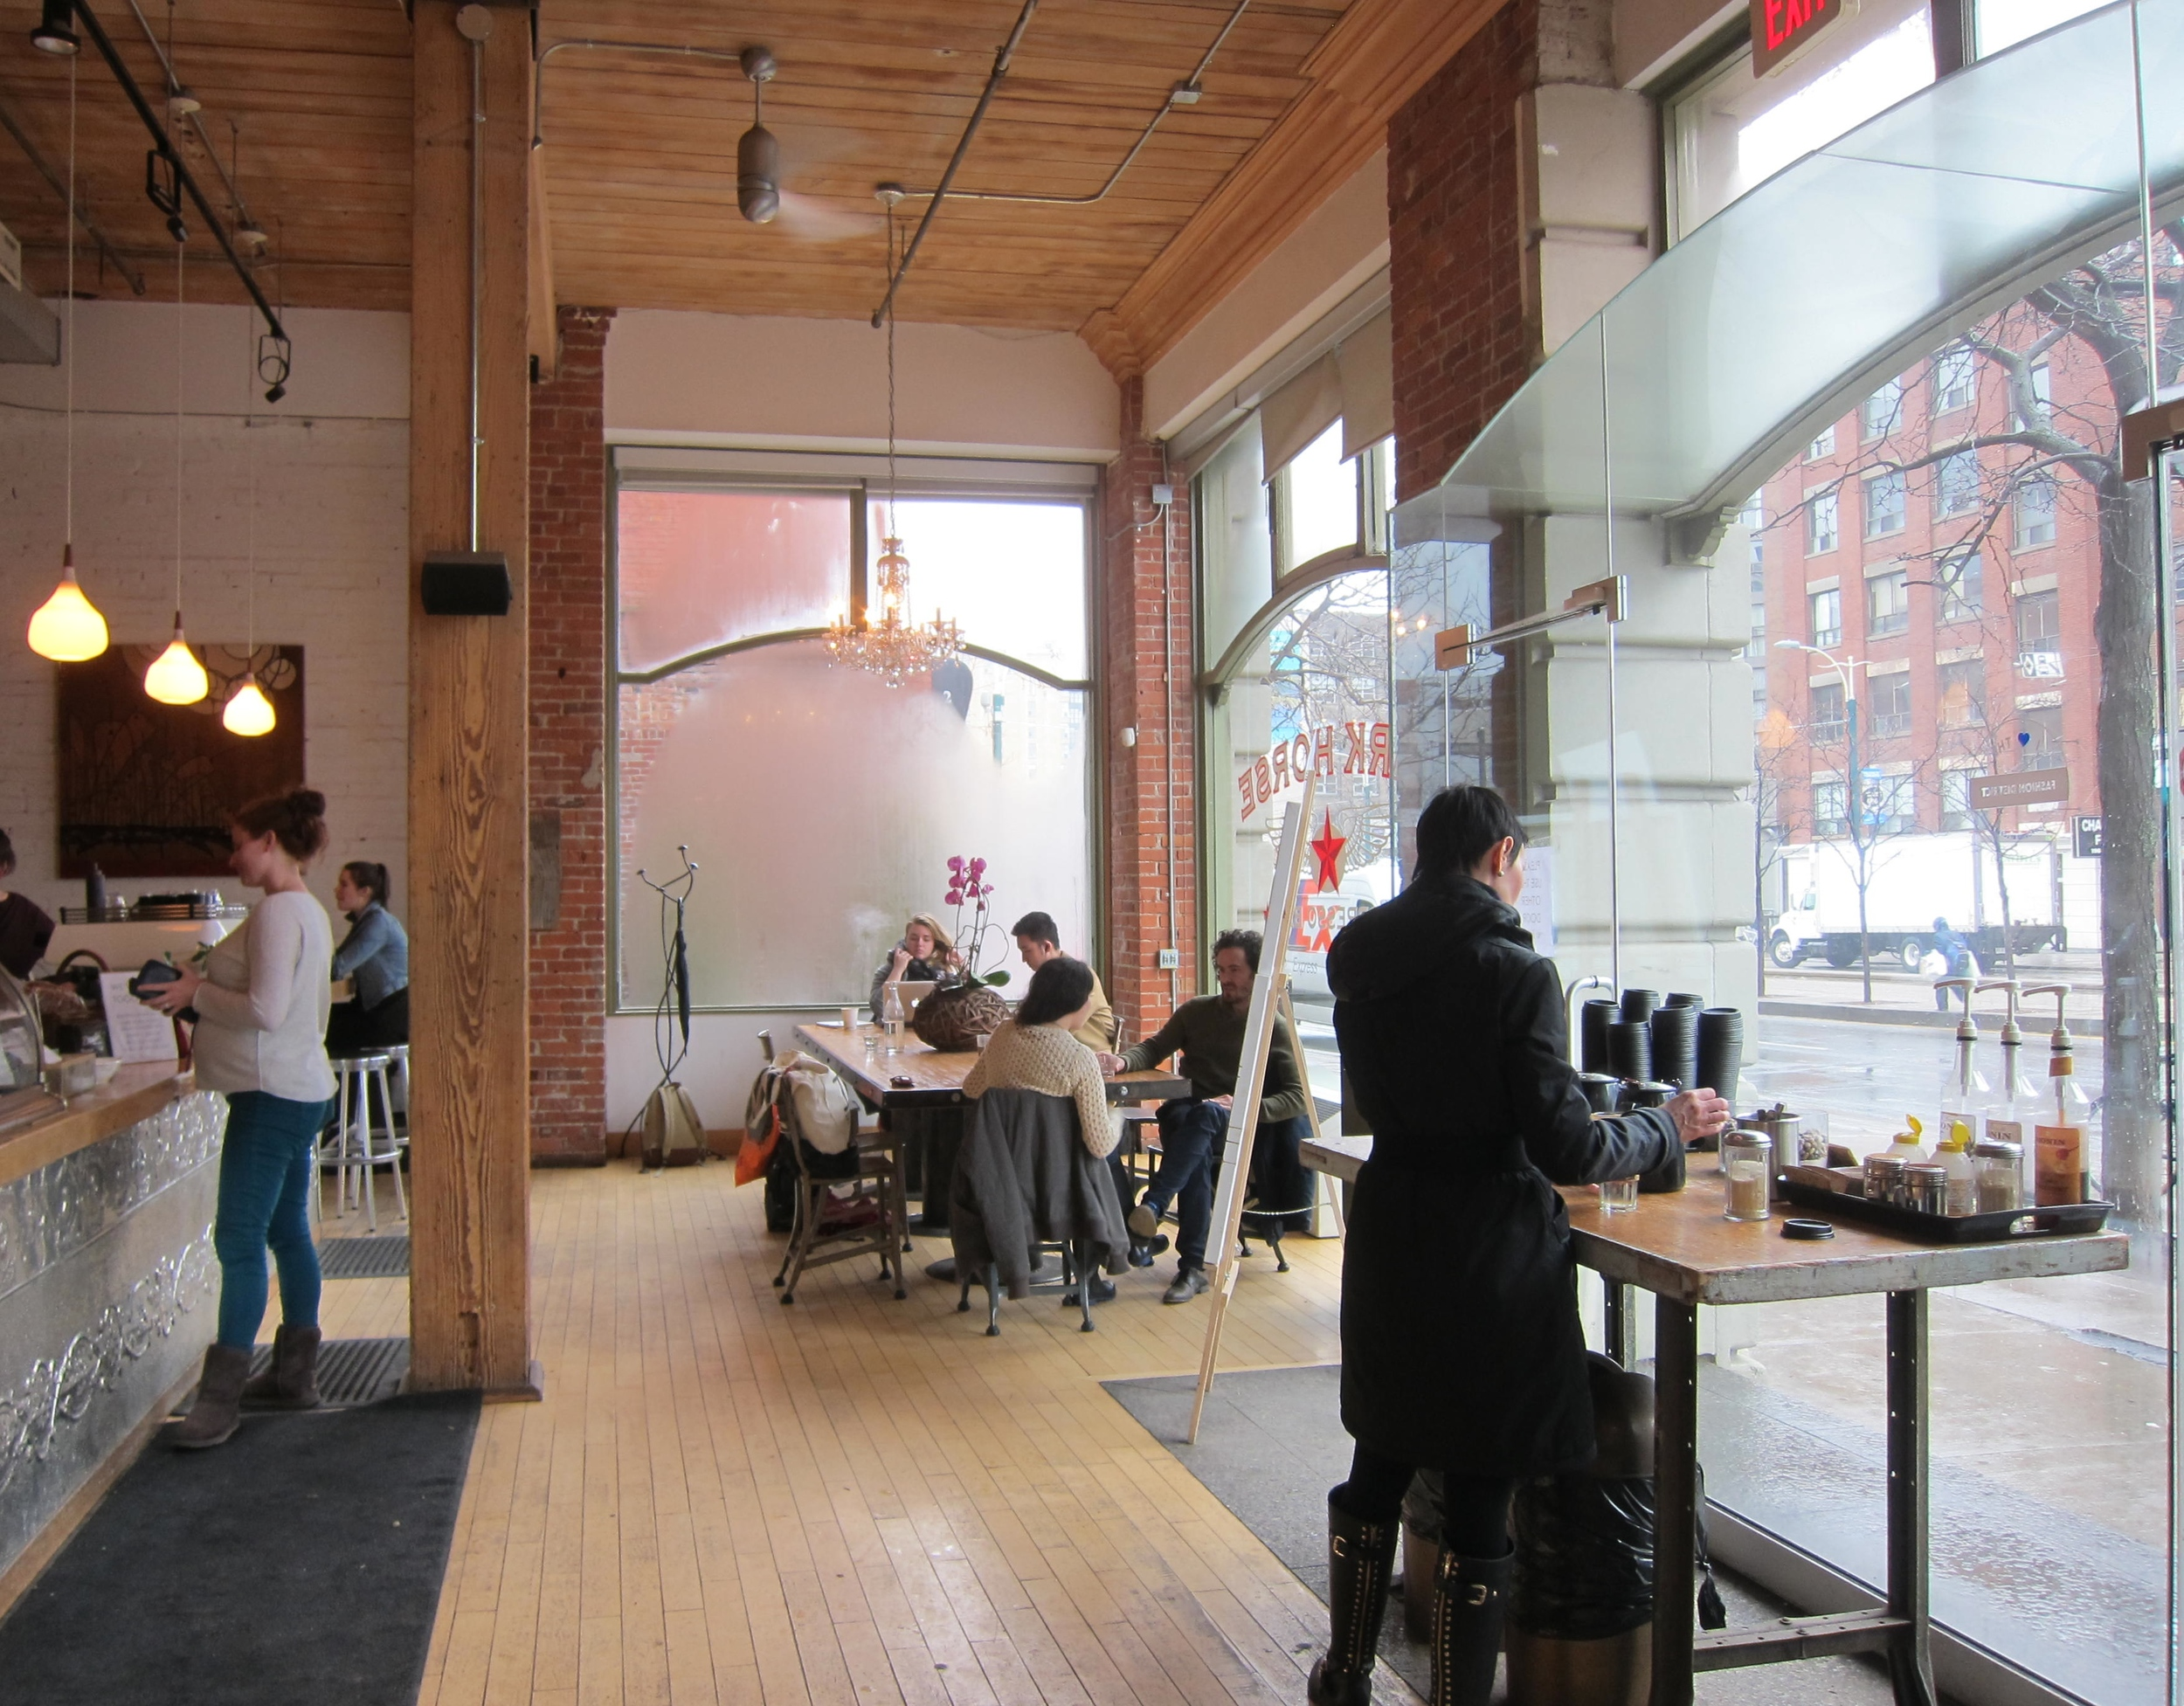 Picture of accessible interior of cafe.